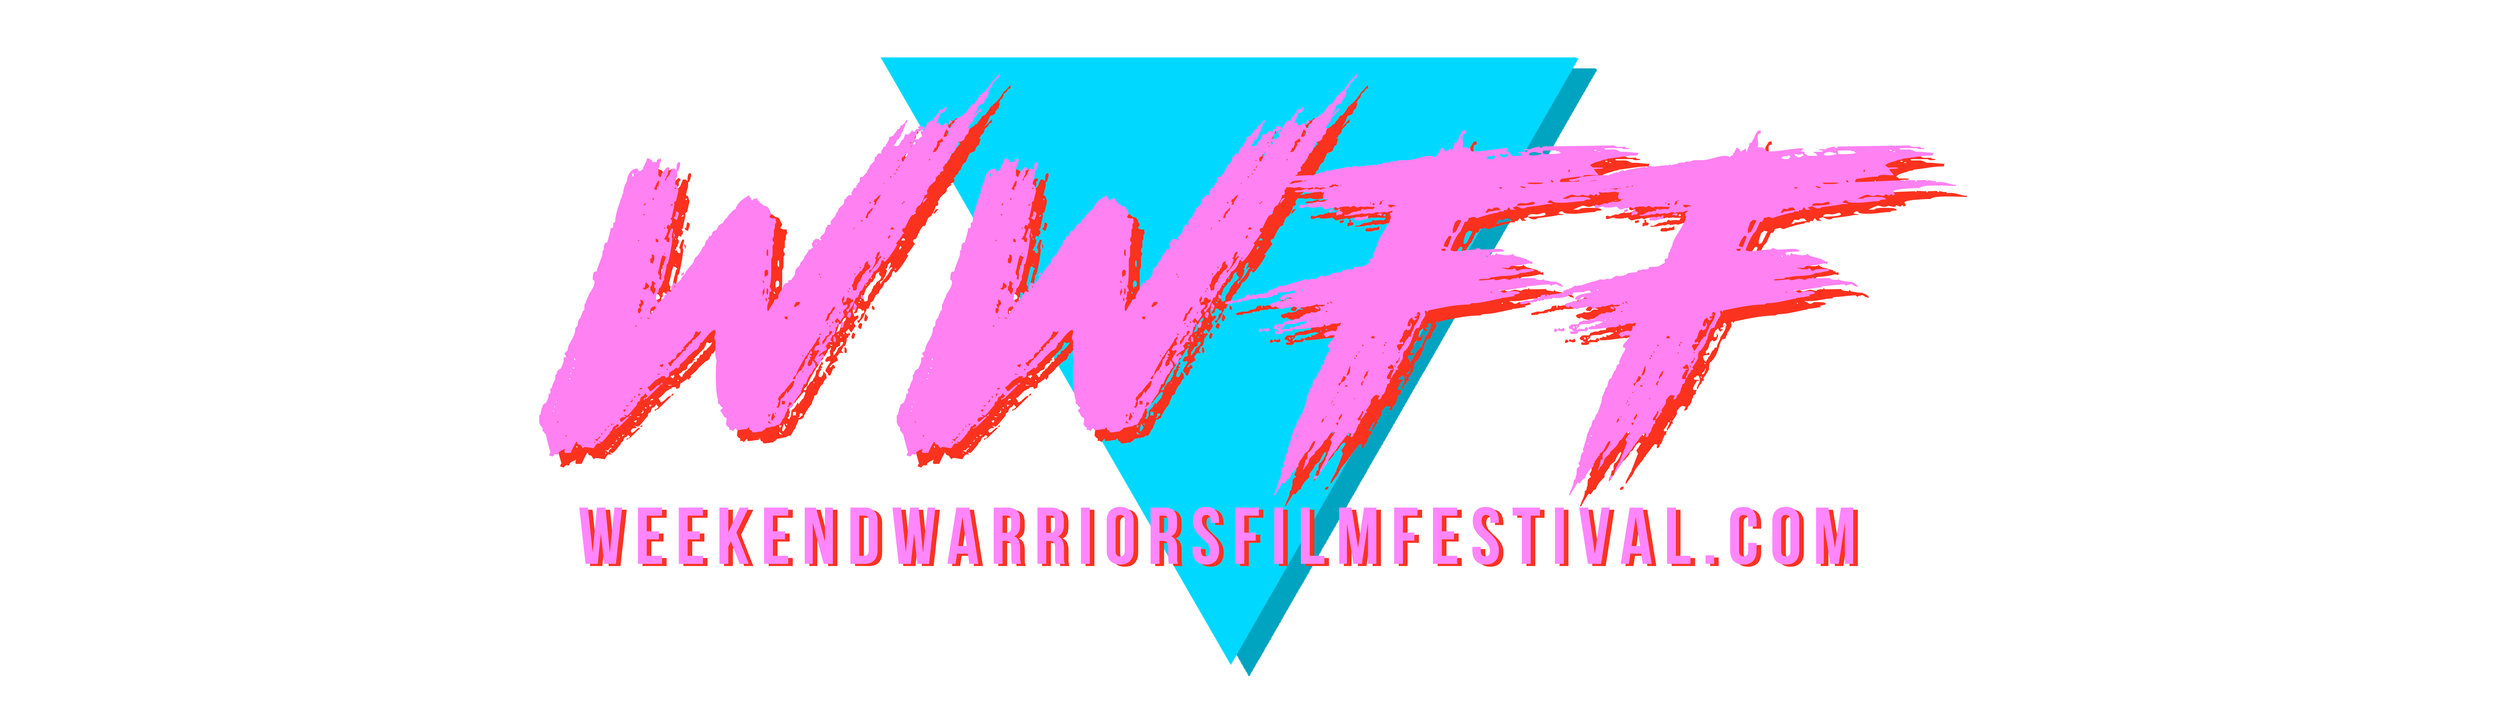 weekend warriors film festival.jpg